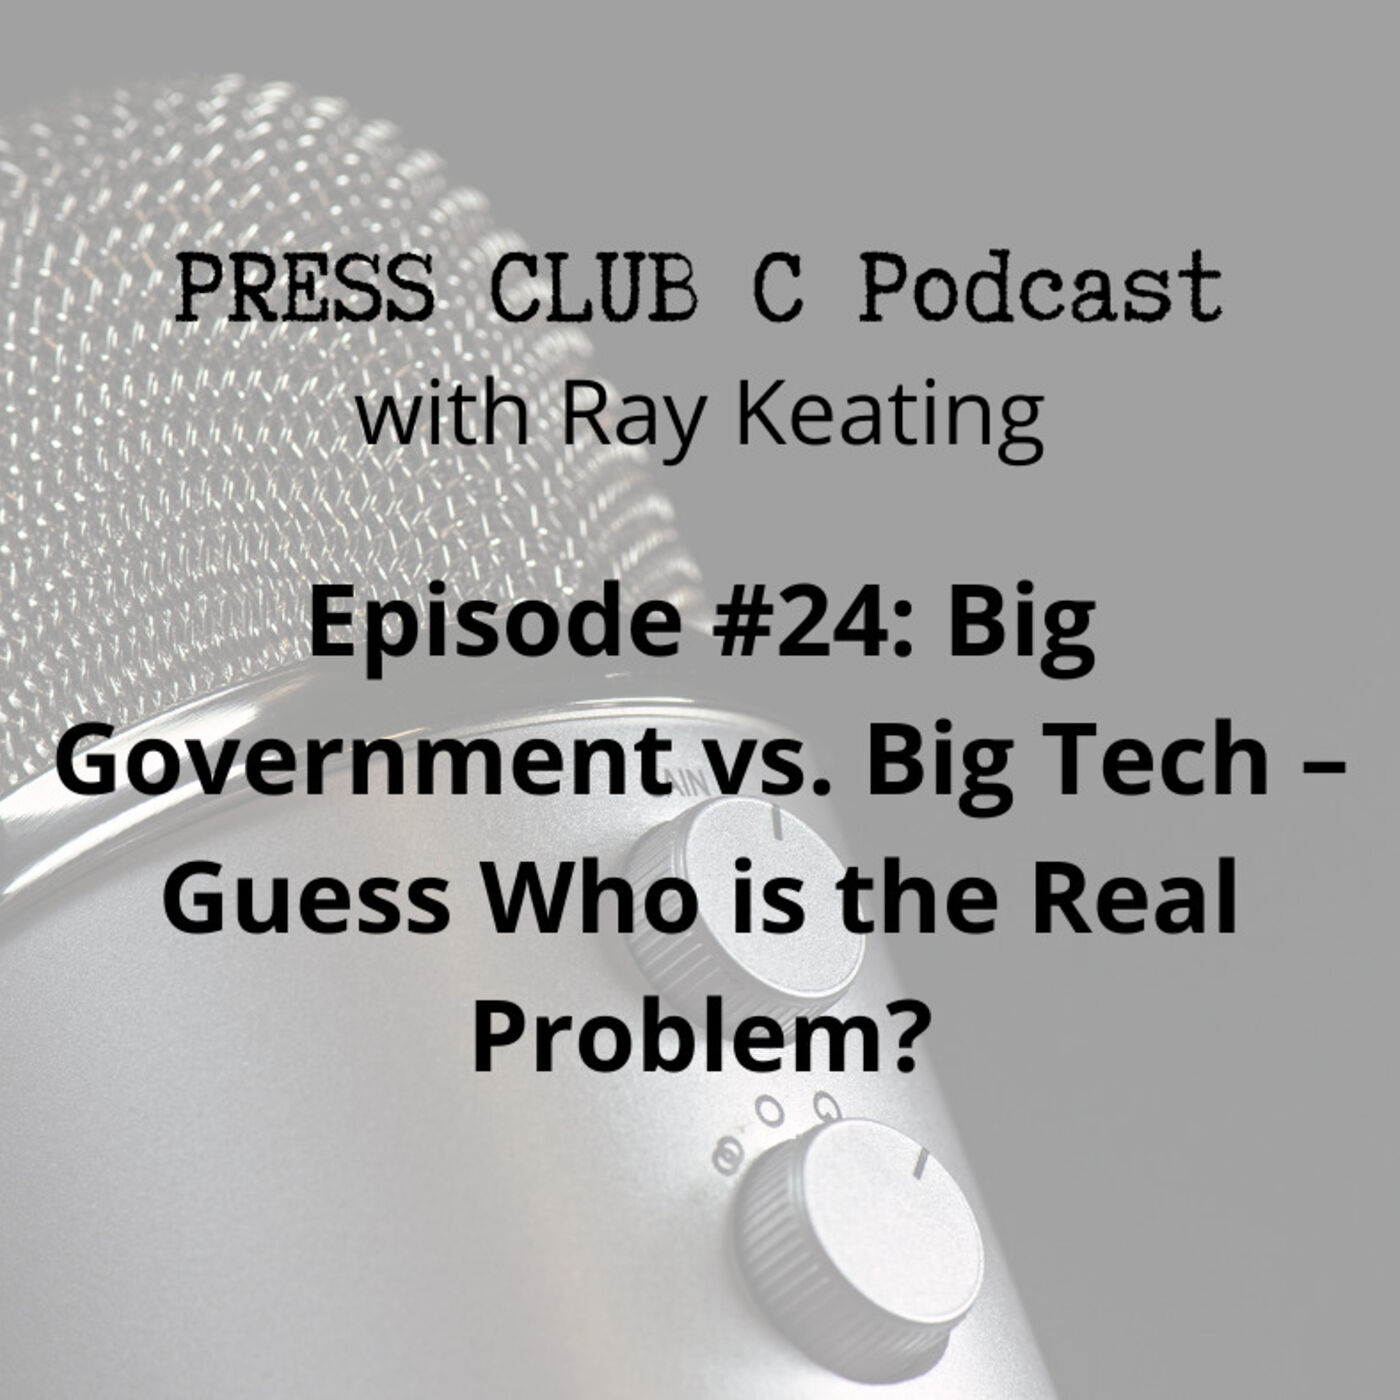 Episode #24: Big Government vs. Big Tech – Guess Who is the Real Problem?